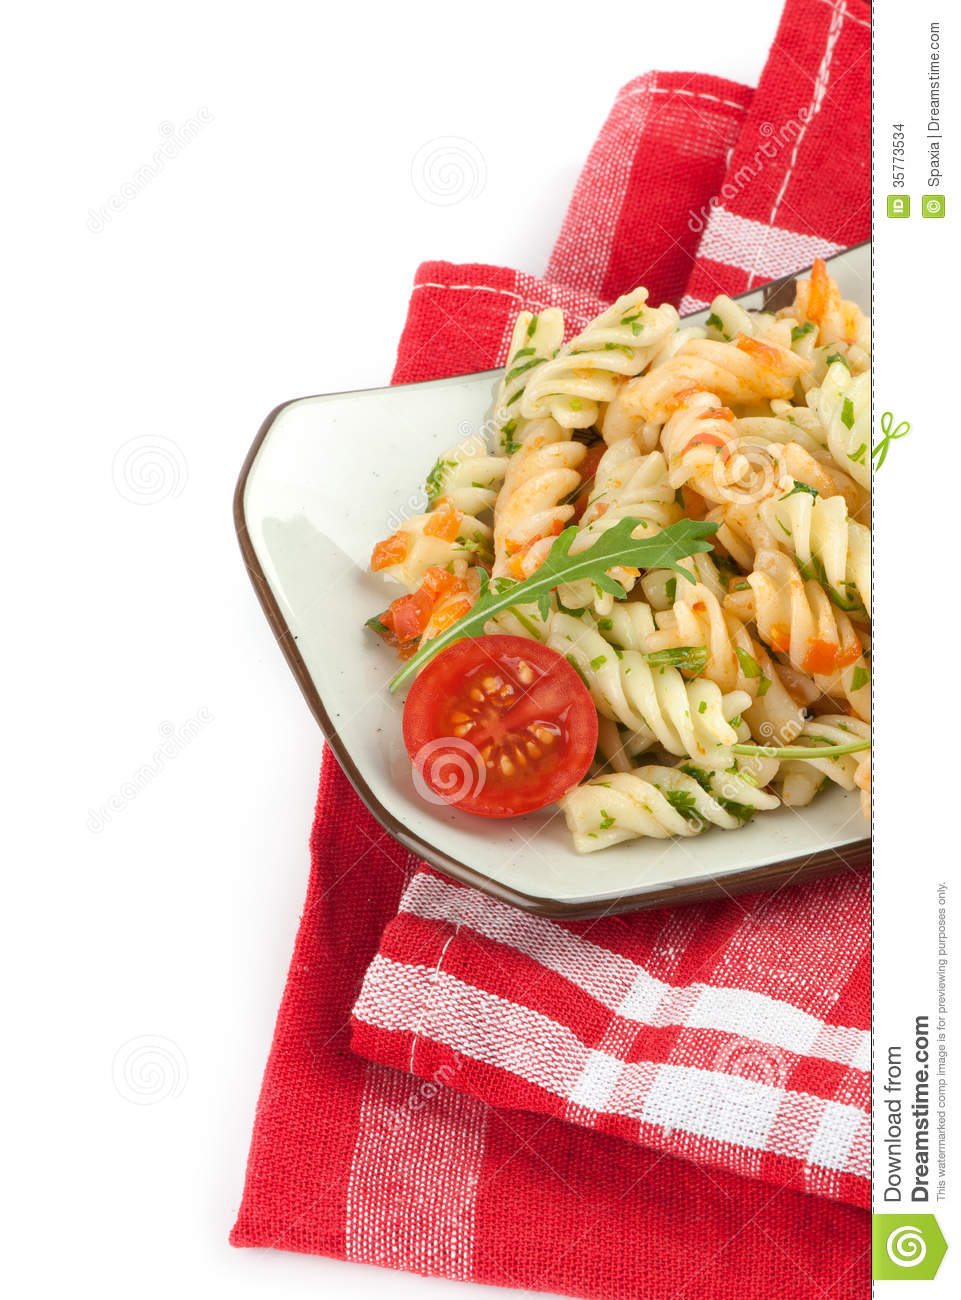 Fusilli Pasta With Tomato Sauce Stock Images - Image: 35773534